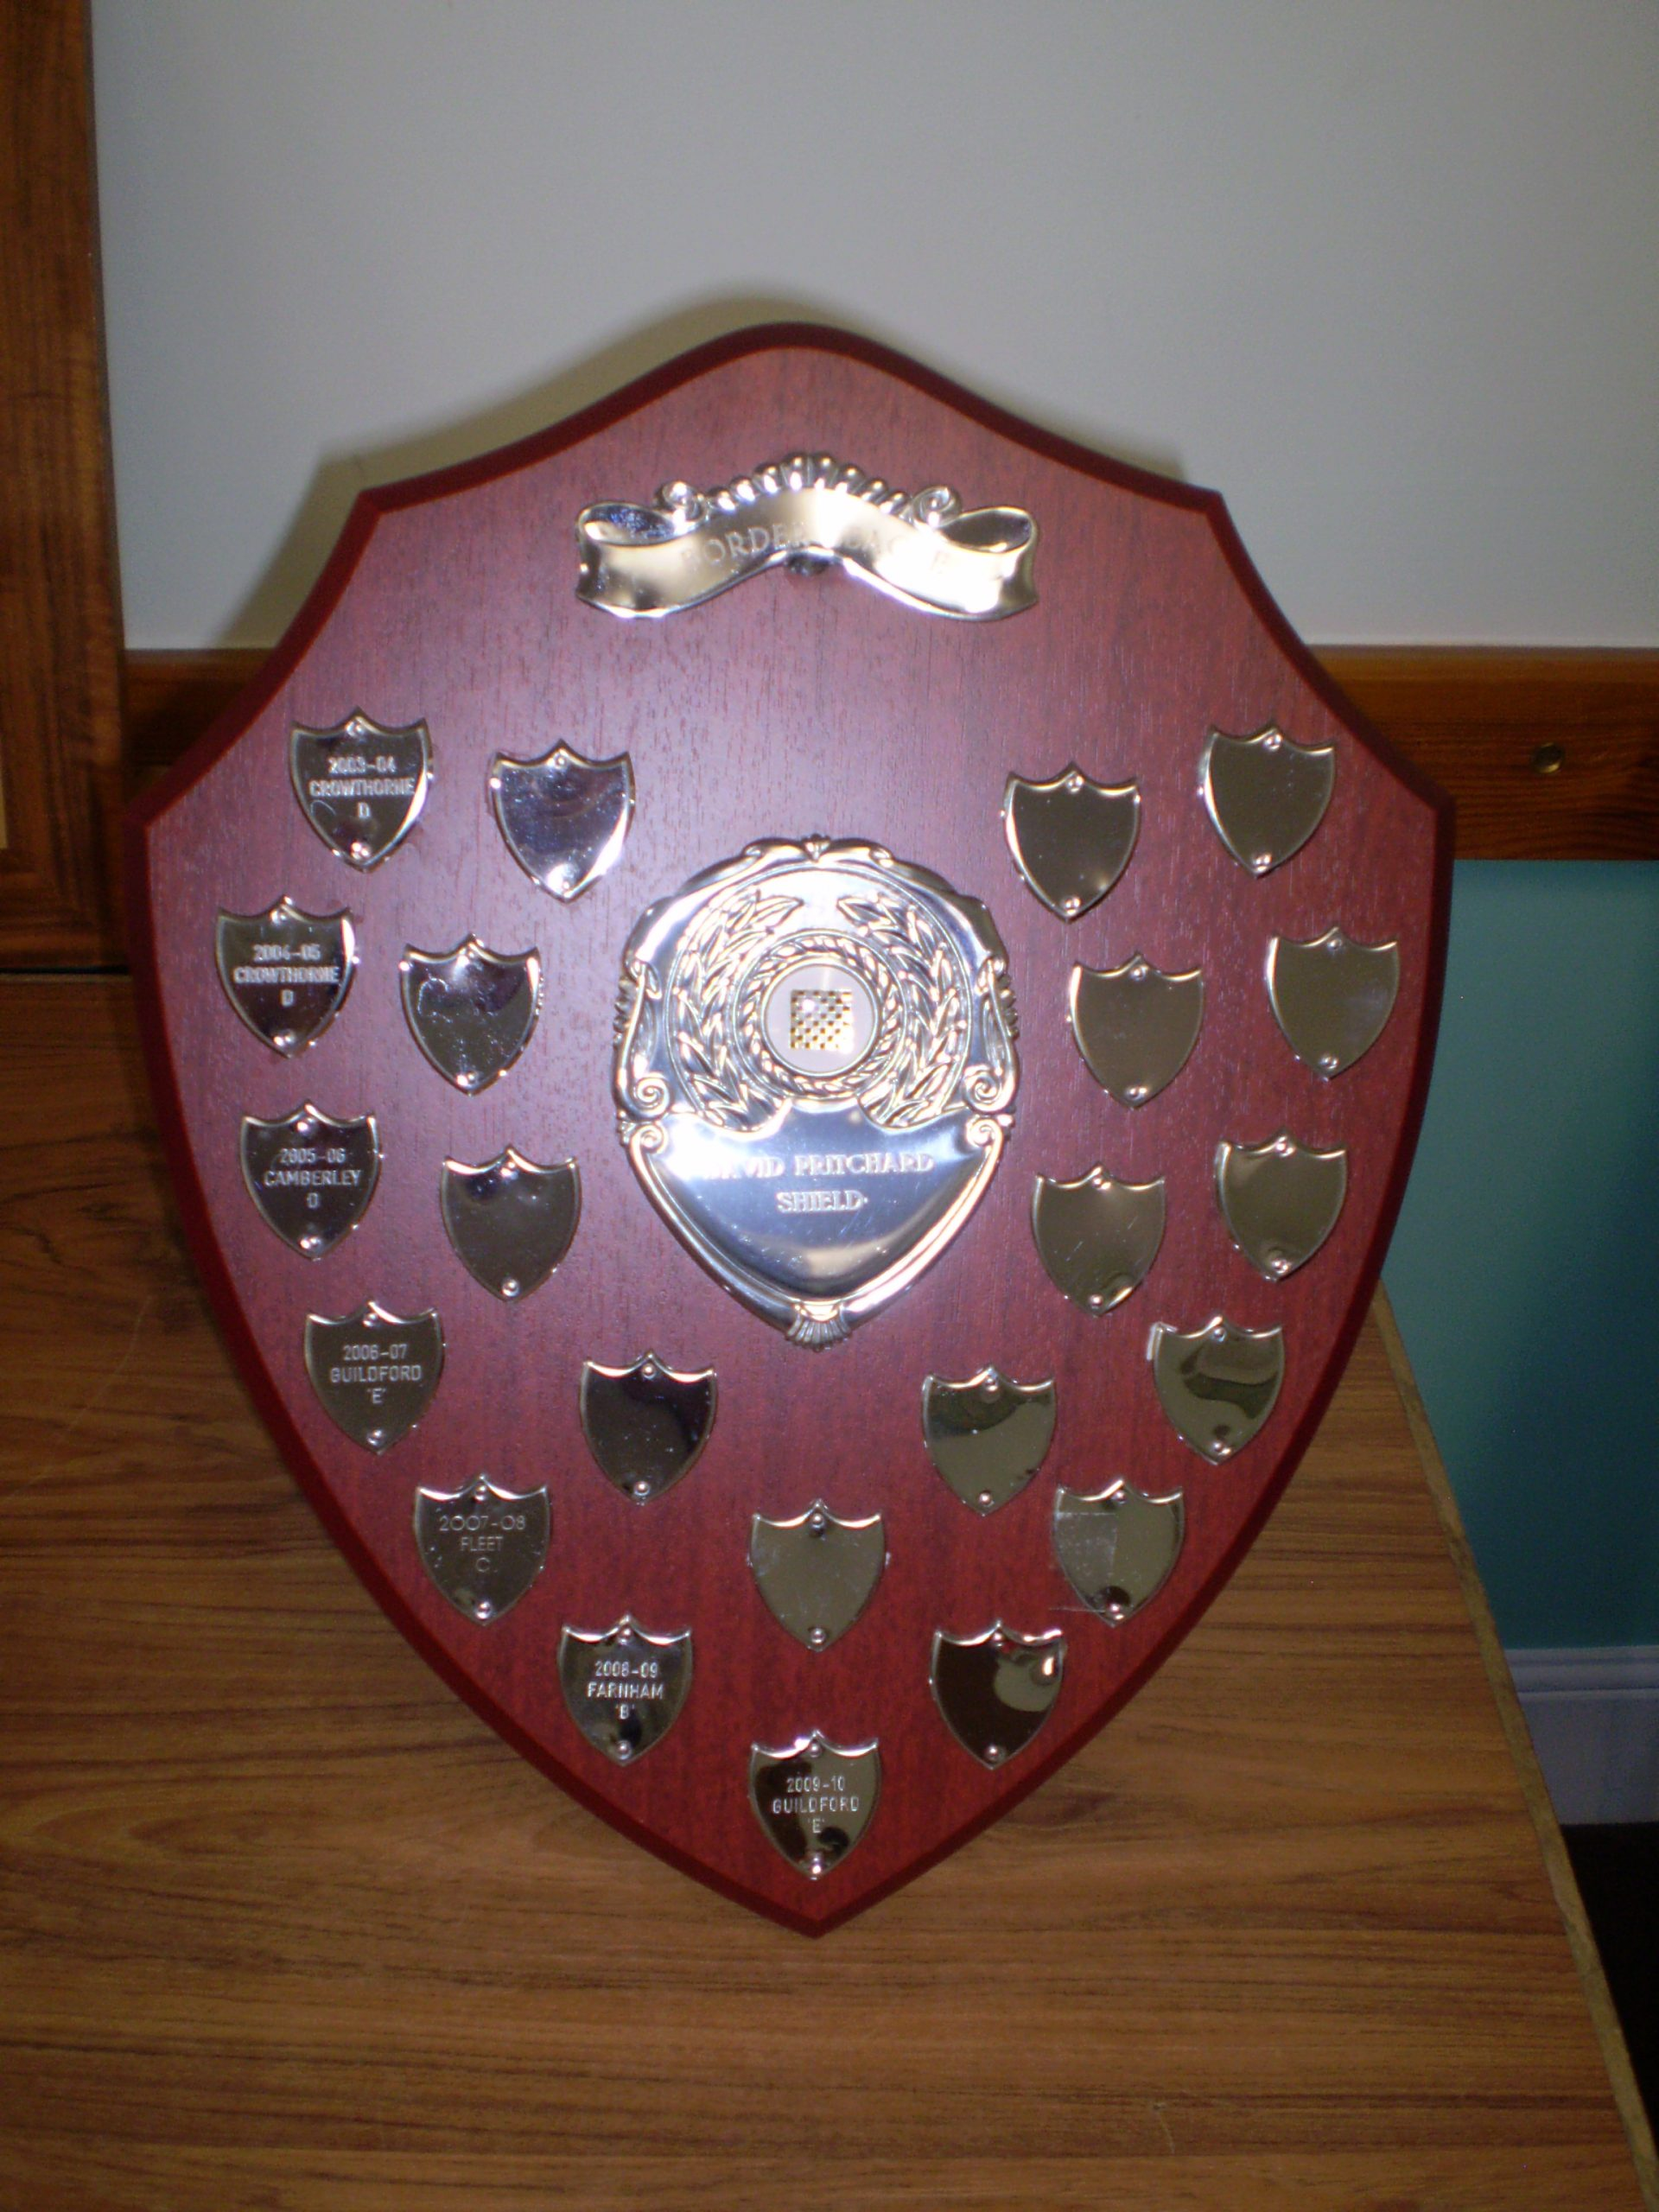 The David Pritchard Shield from the Surrey Border League